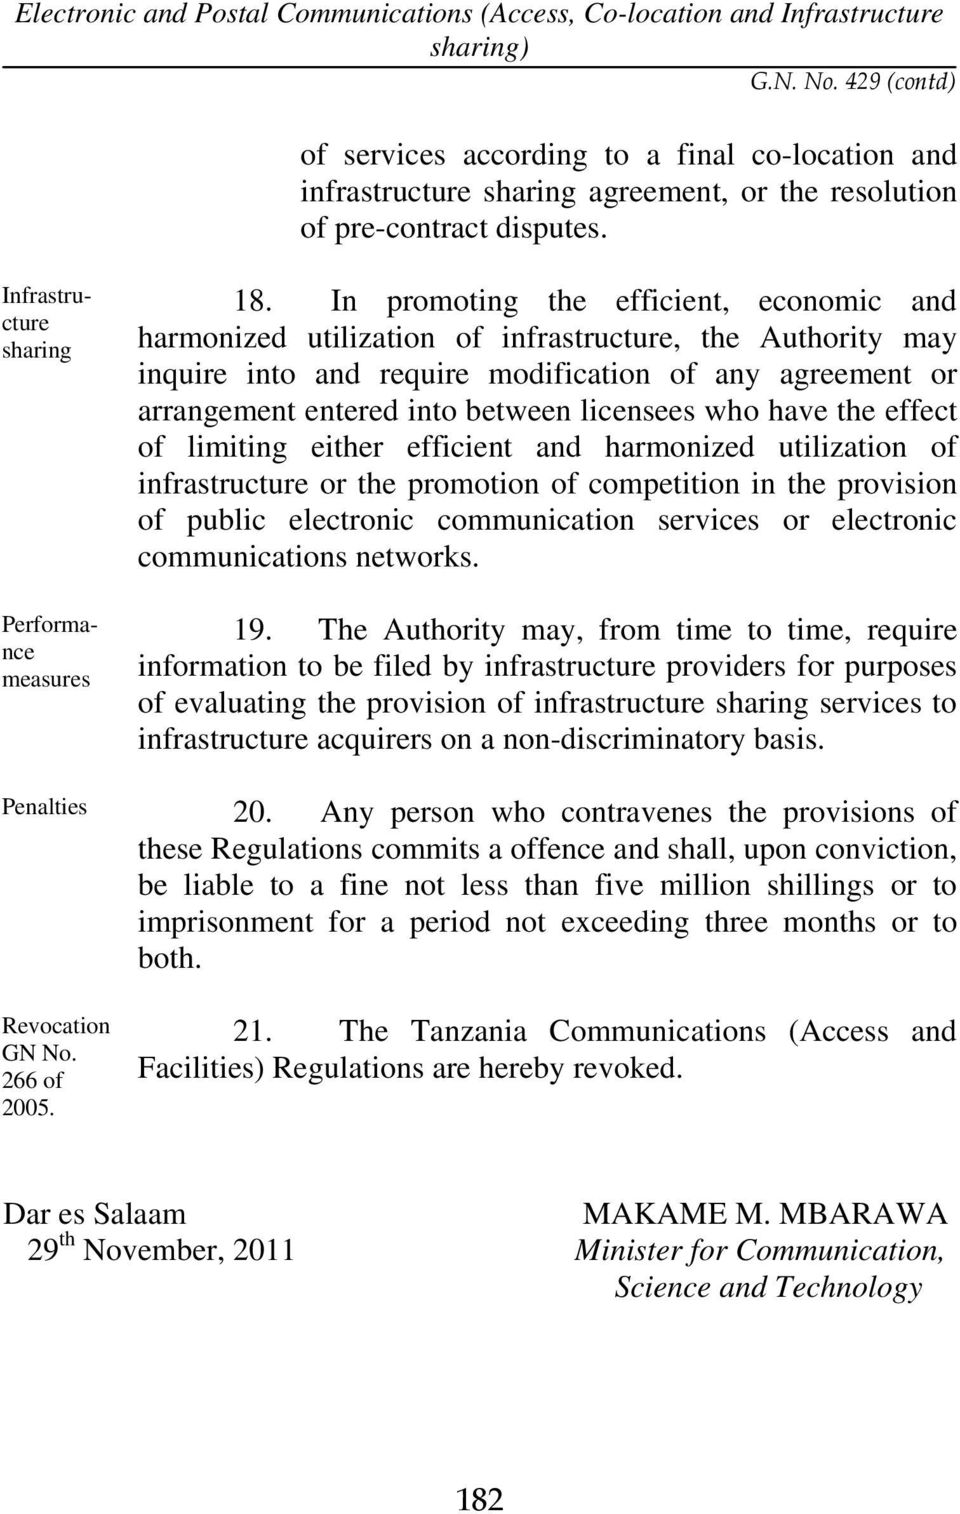 licensees who have the effect of limiting either efficient and harmonized utilization of infrastructure or the promotion of competition in the provision of public electronic communication services or